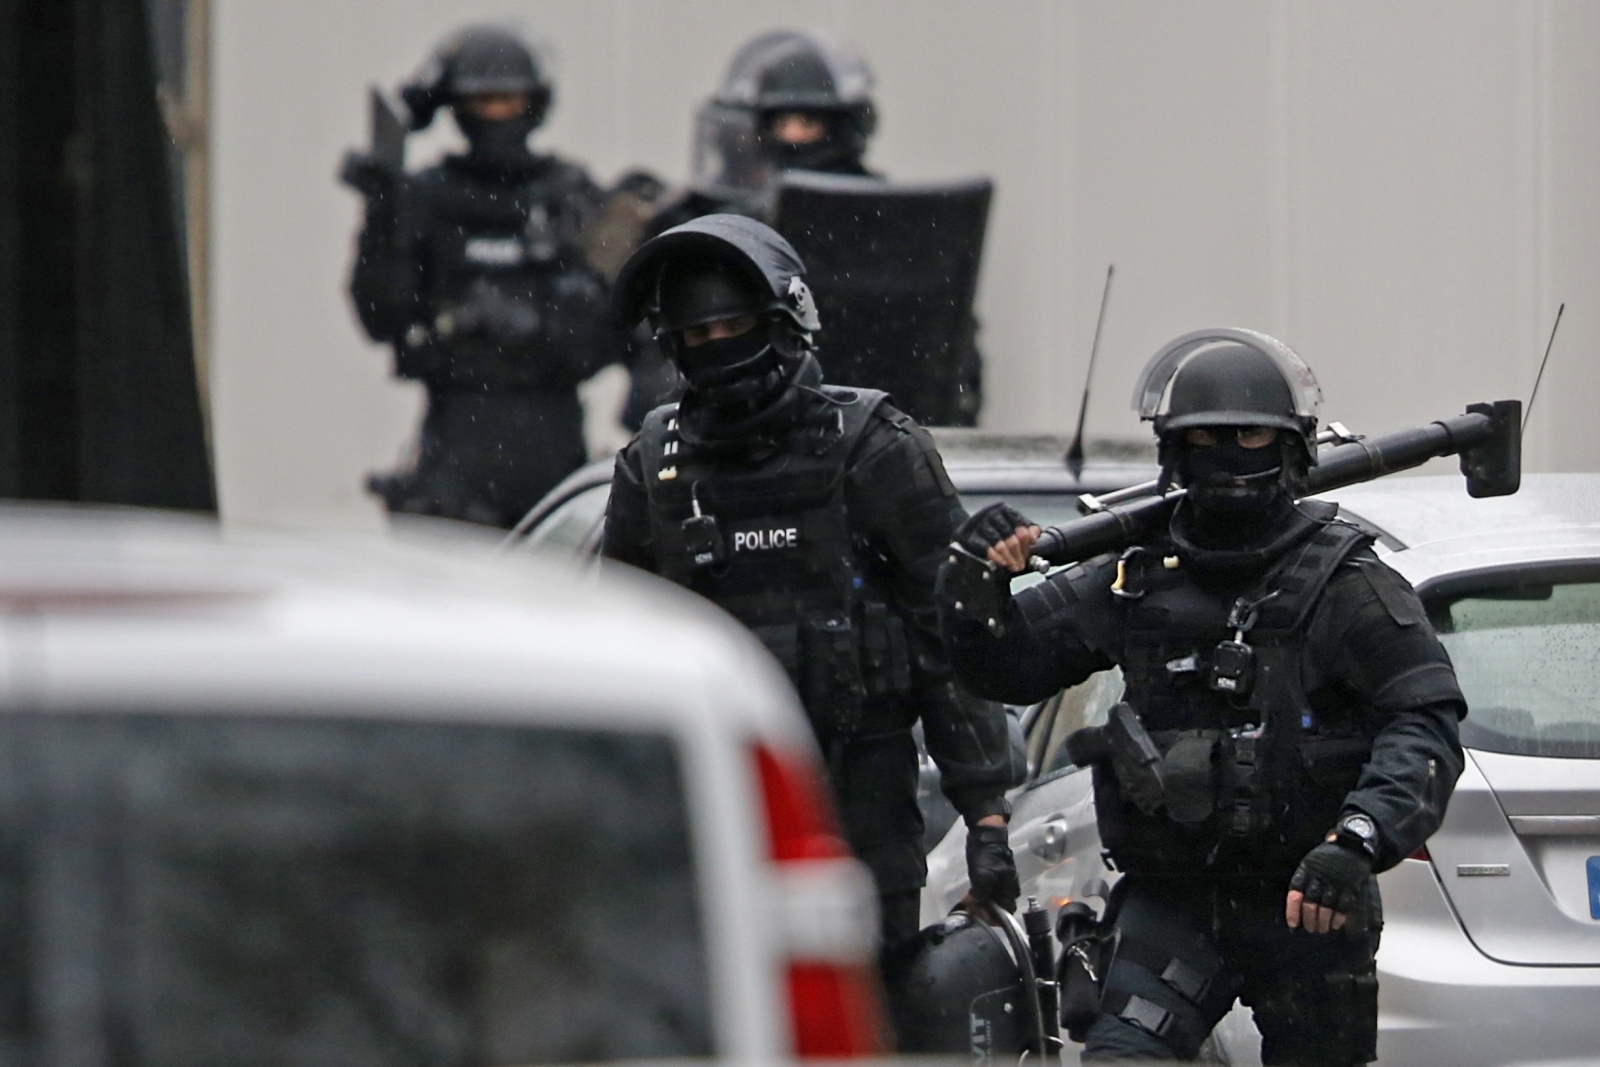 Paris Shooting: Female police officer killed as gunman opens fire after Charlie Hebdo attack